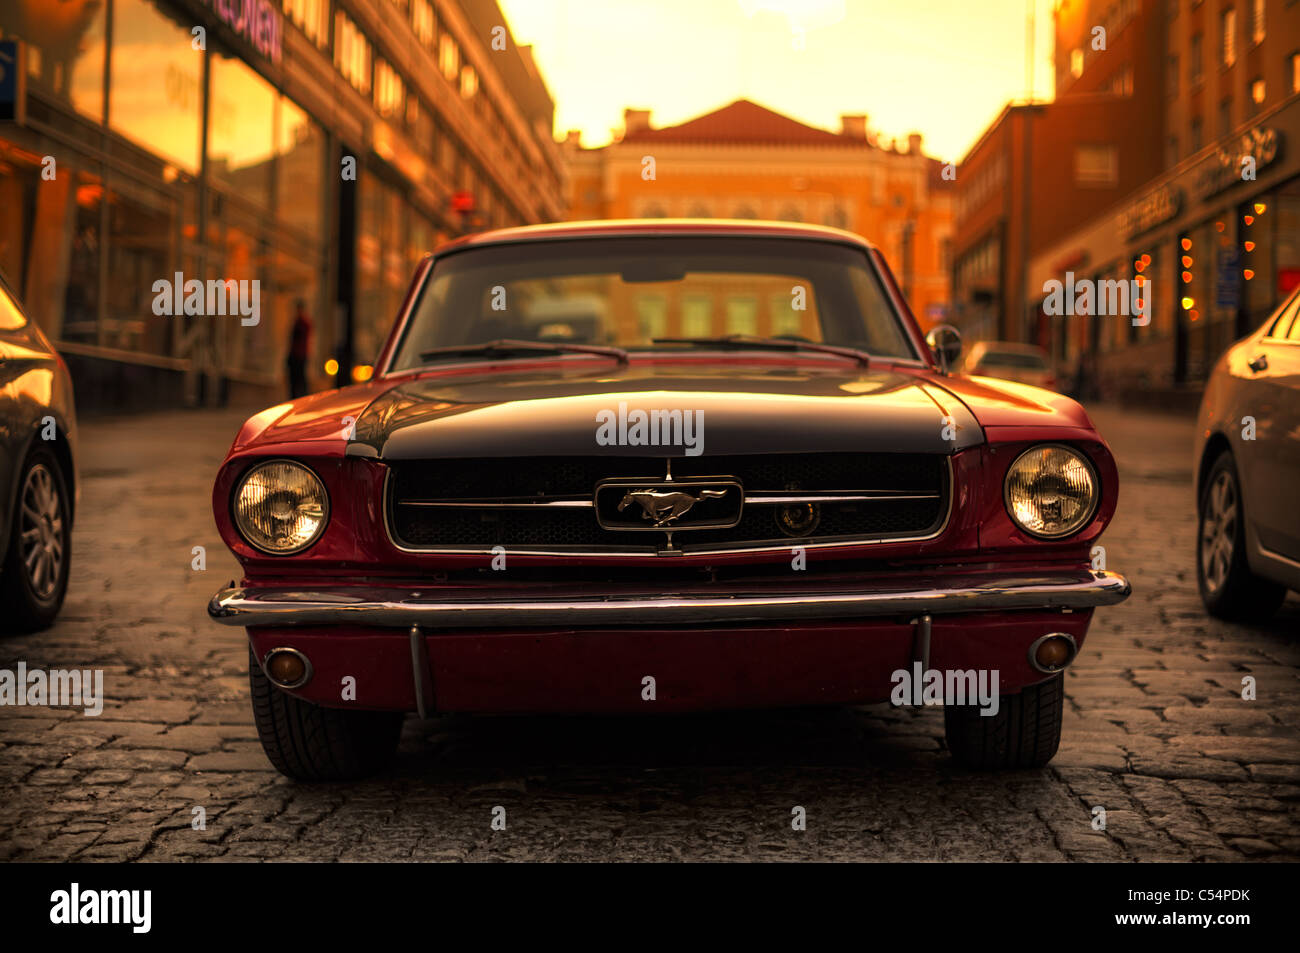 A Mustang - Stock Image